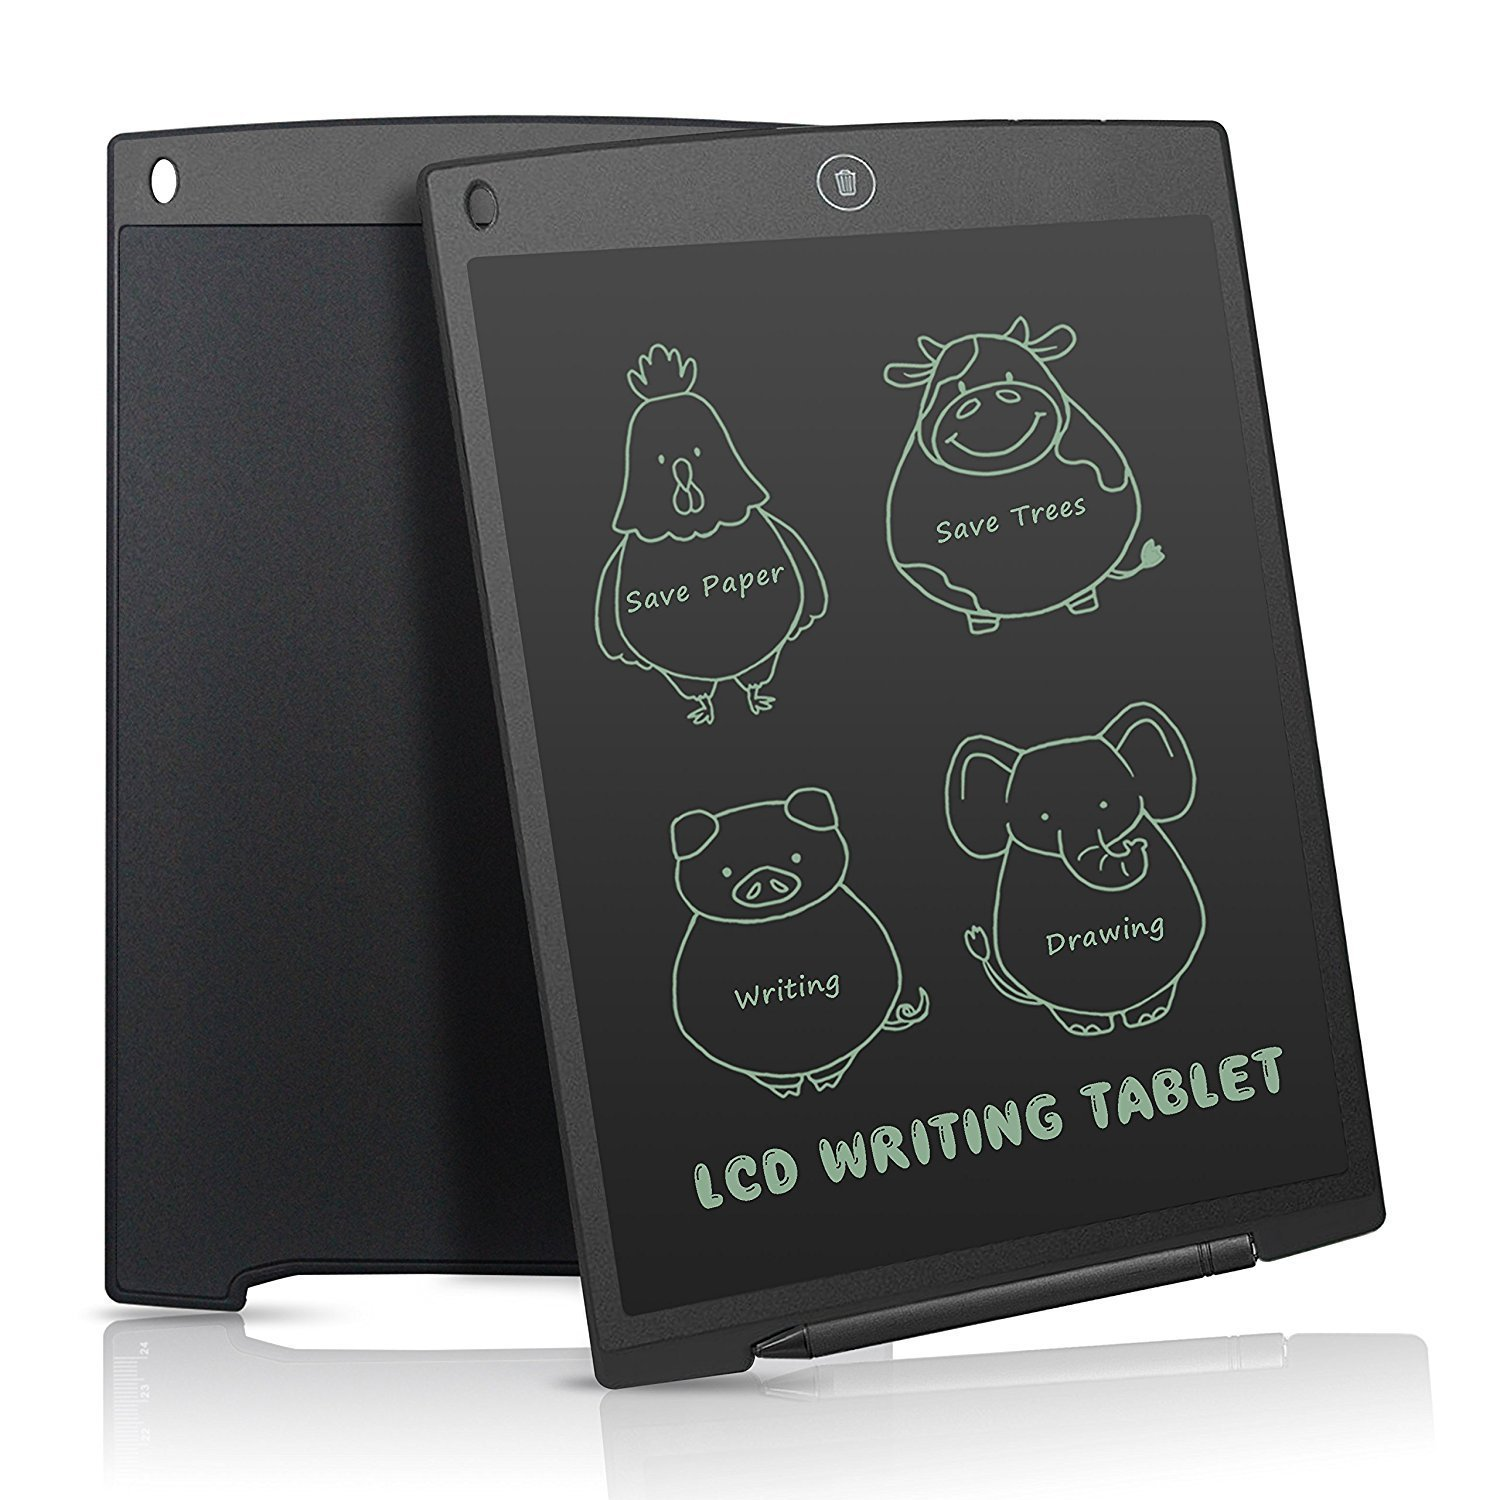 AKNICI LCD Writing Board, 12 Inch LCD Graphic Pad, Electronic Note Pads, Drawing Board, Whiteboard, LCD Writing Tablet for Childrens Kids Gifts, Elder Message Board, Family Memo and Office (Black)